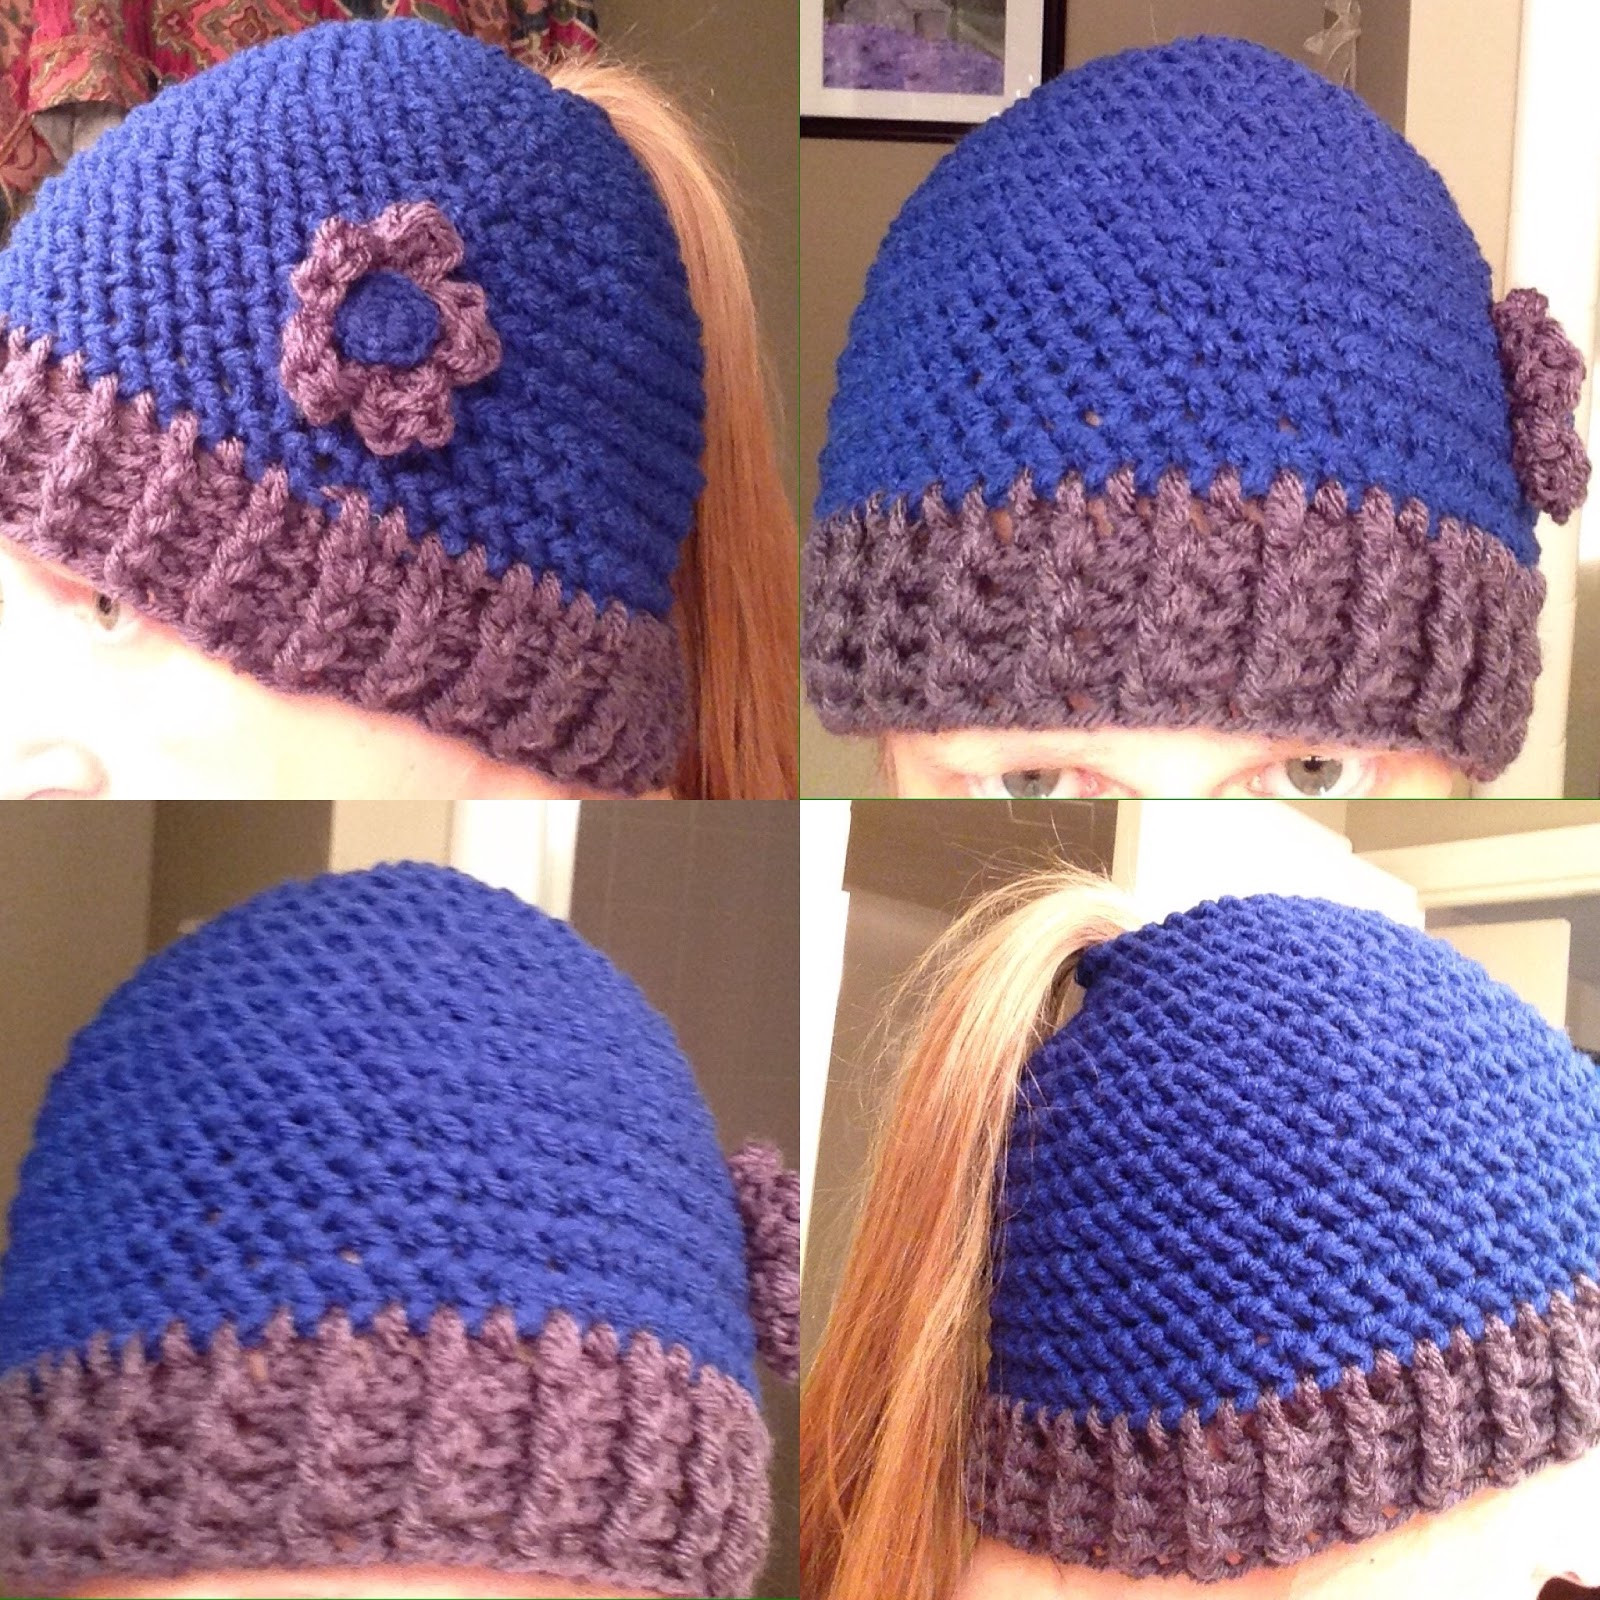 Ponytail Hat Pattern Awesome the Perfect Stitch Crochet Messy Bun Ponytail Hat Of Wonderful 46 Pictures Ponytail Hat Pattern